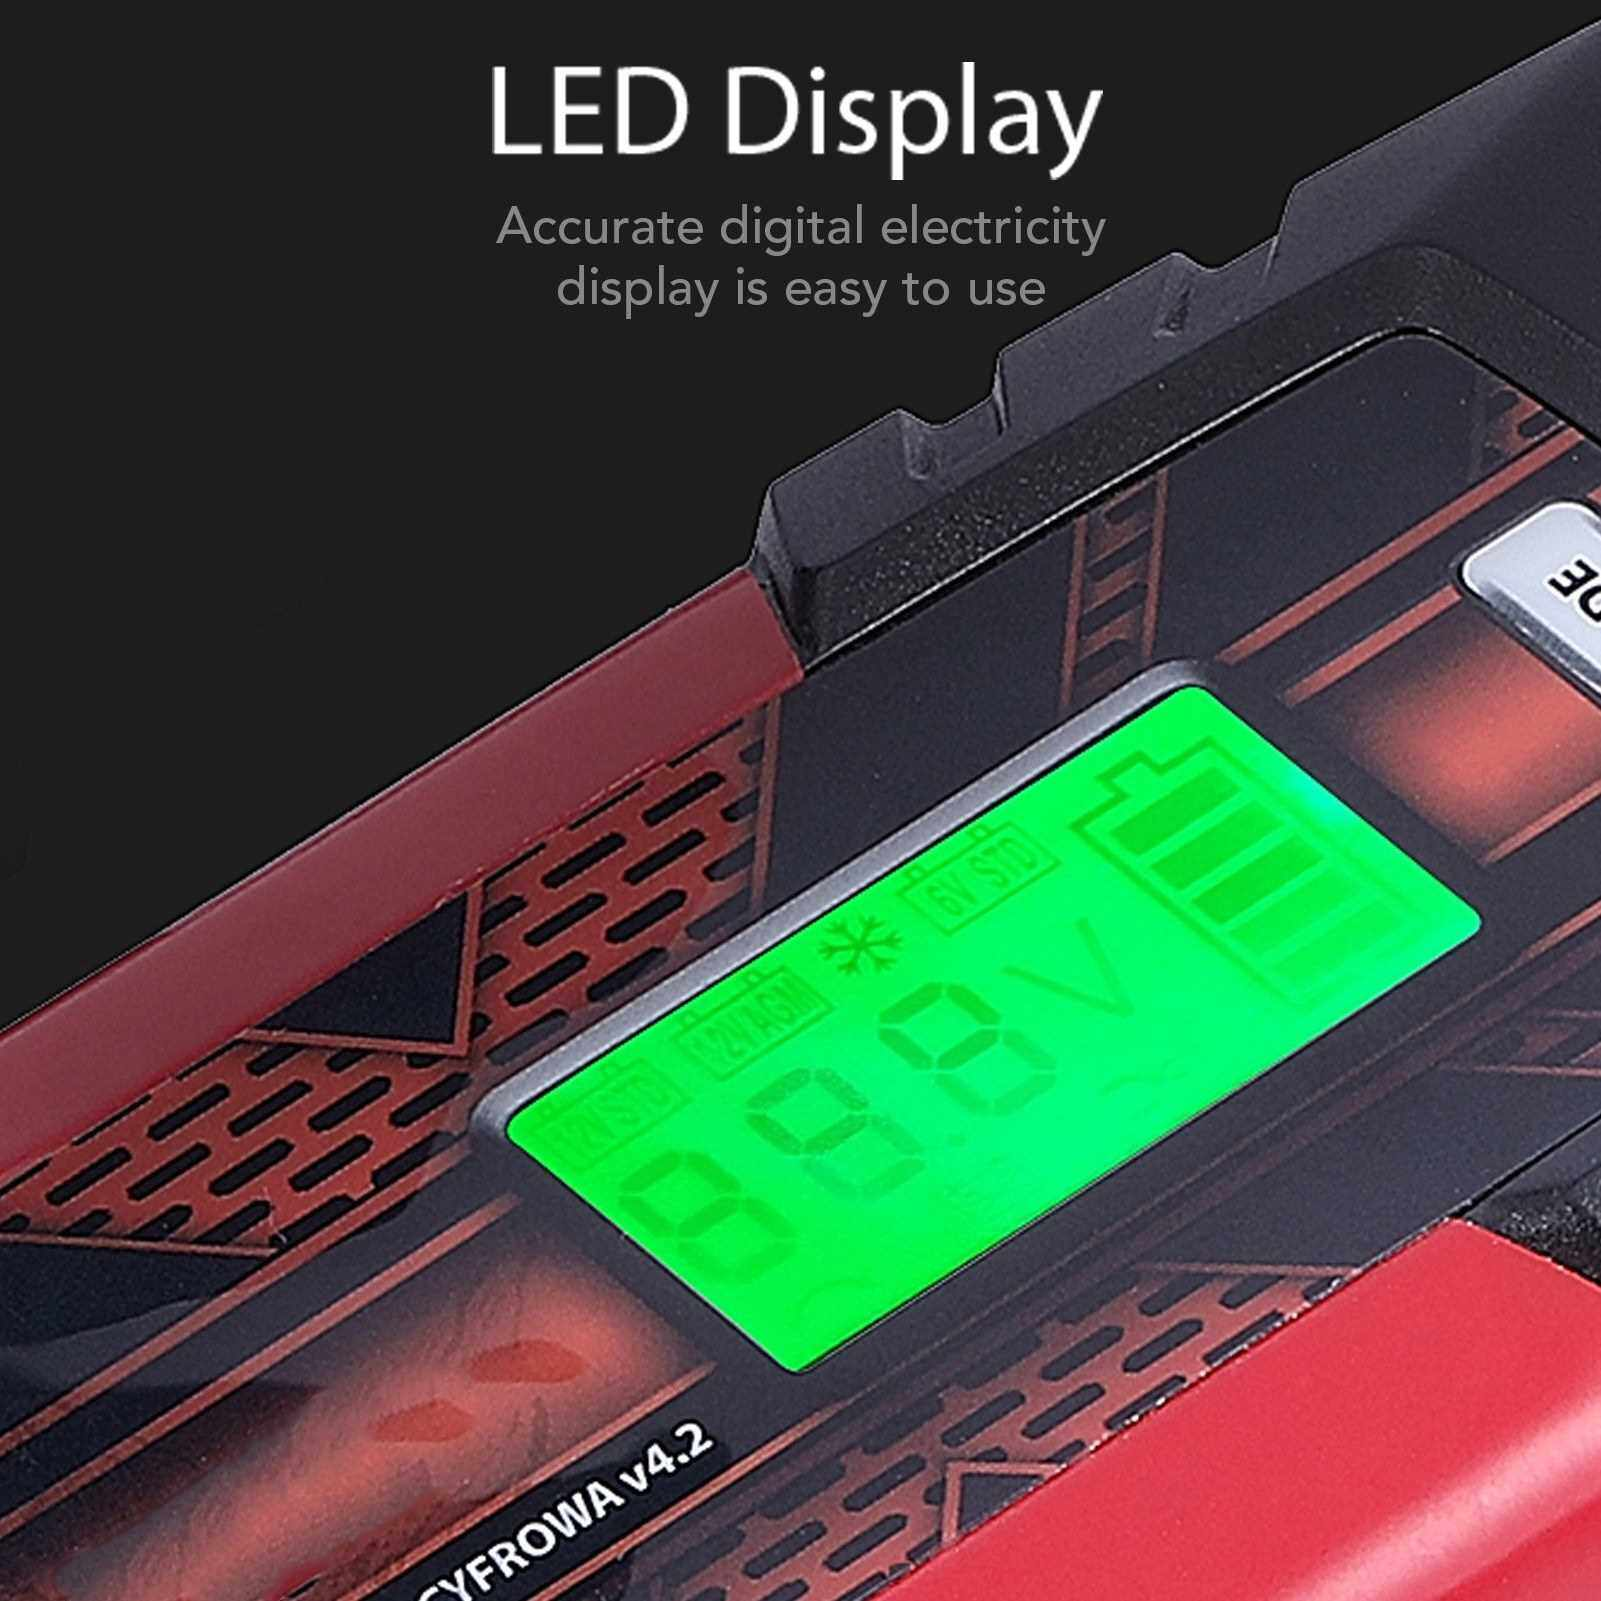 People's Choice 12 V 4.5A 3-Stage Automatic Intelligent Battery Charge Device with LCD Display for AGM GEL SLA WET Batteries (Uk)